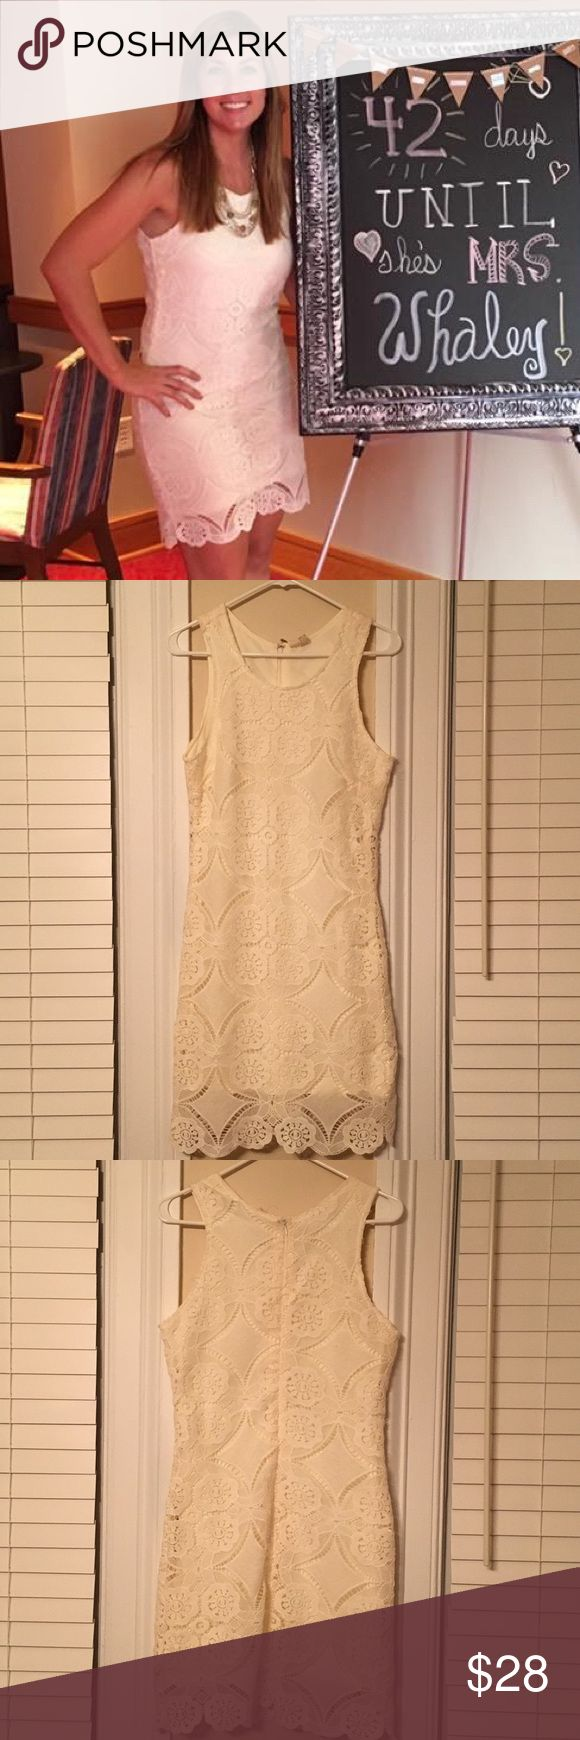 Adorable White Dress! Very cute Ivory dress in great condition! I wore this dress once for a bridal shower and loved it! It does have some slight discoloration near the top of the zipper, it was there when I bought it but didn't concern me because my hair covered the area. See photos. Dresses Mini